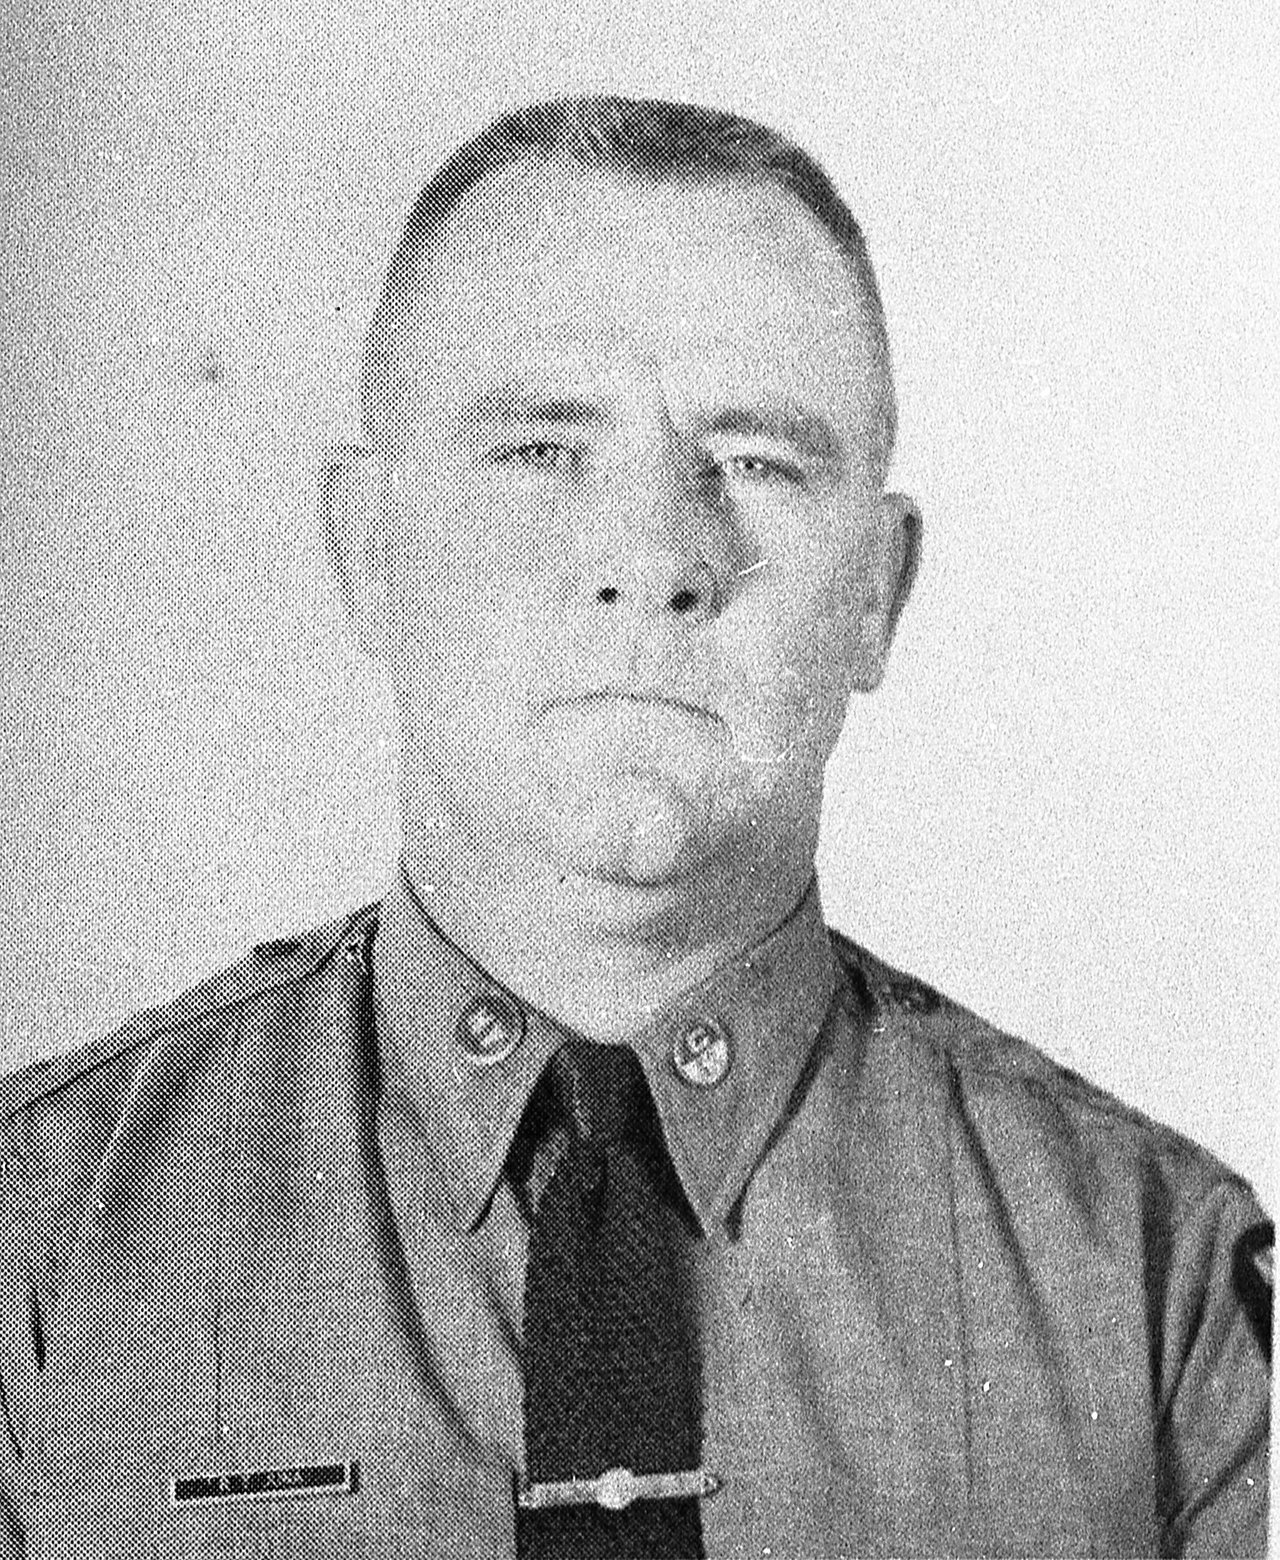 February 8, 1970 - Trooper Richard T. Juna